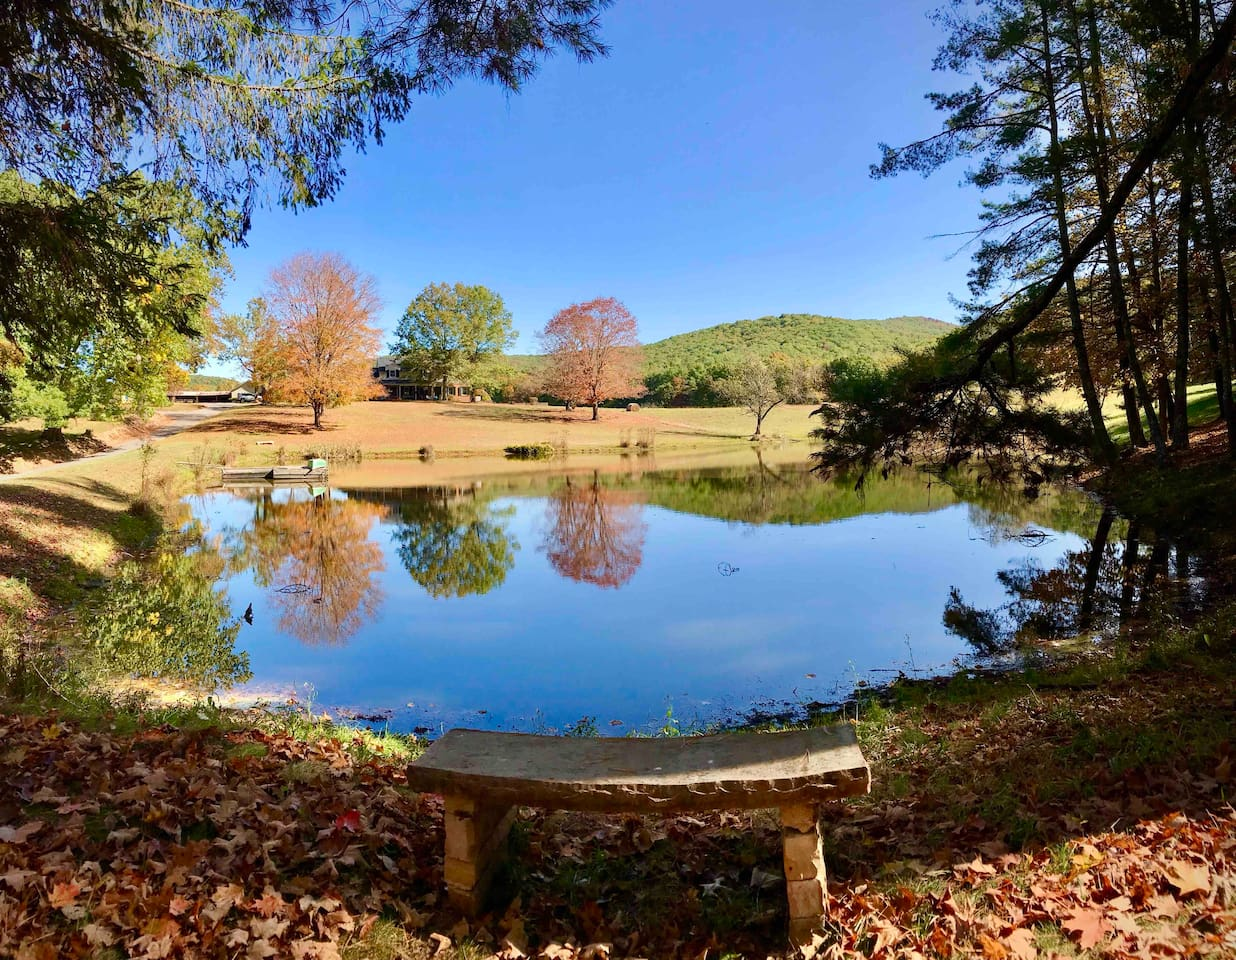 The pond in fall